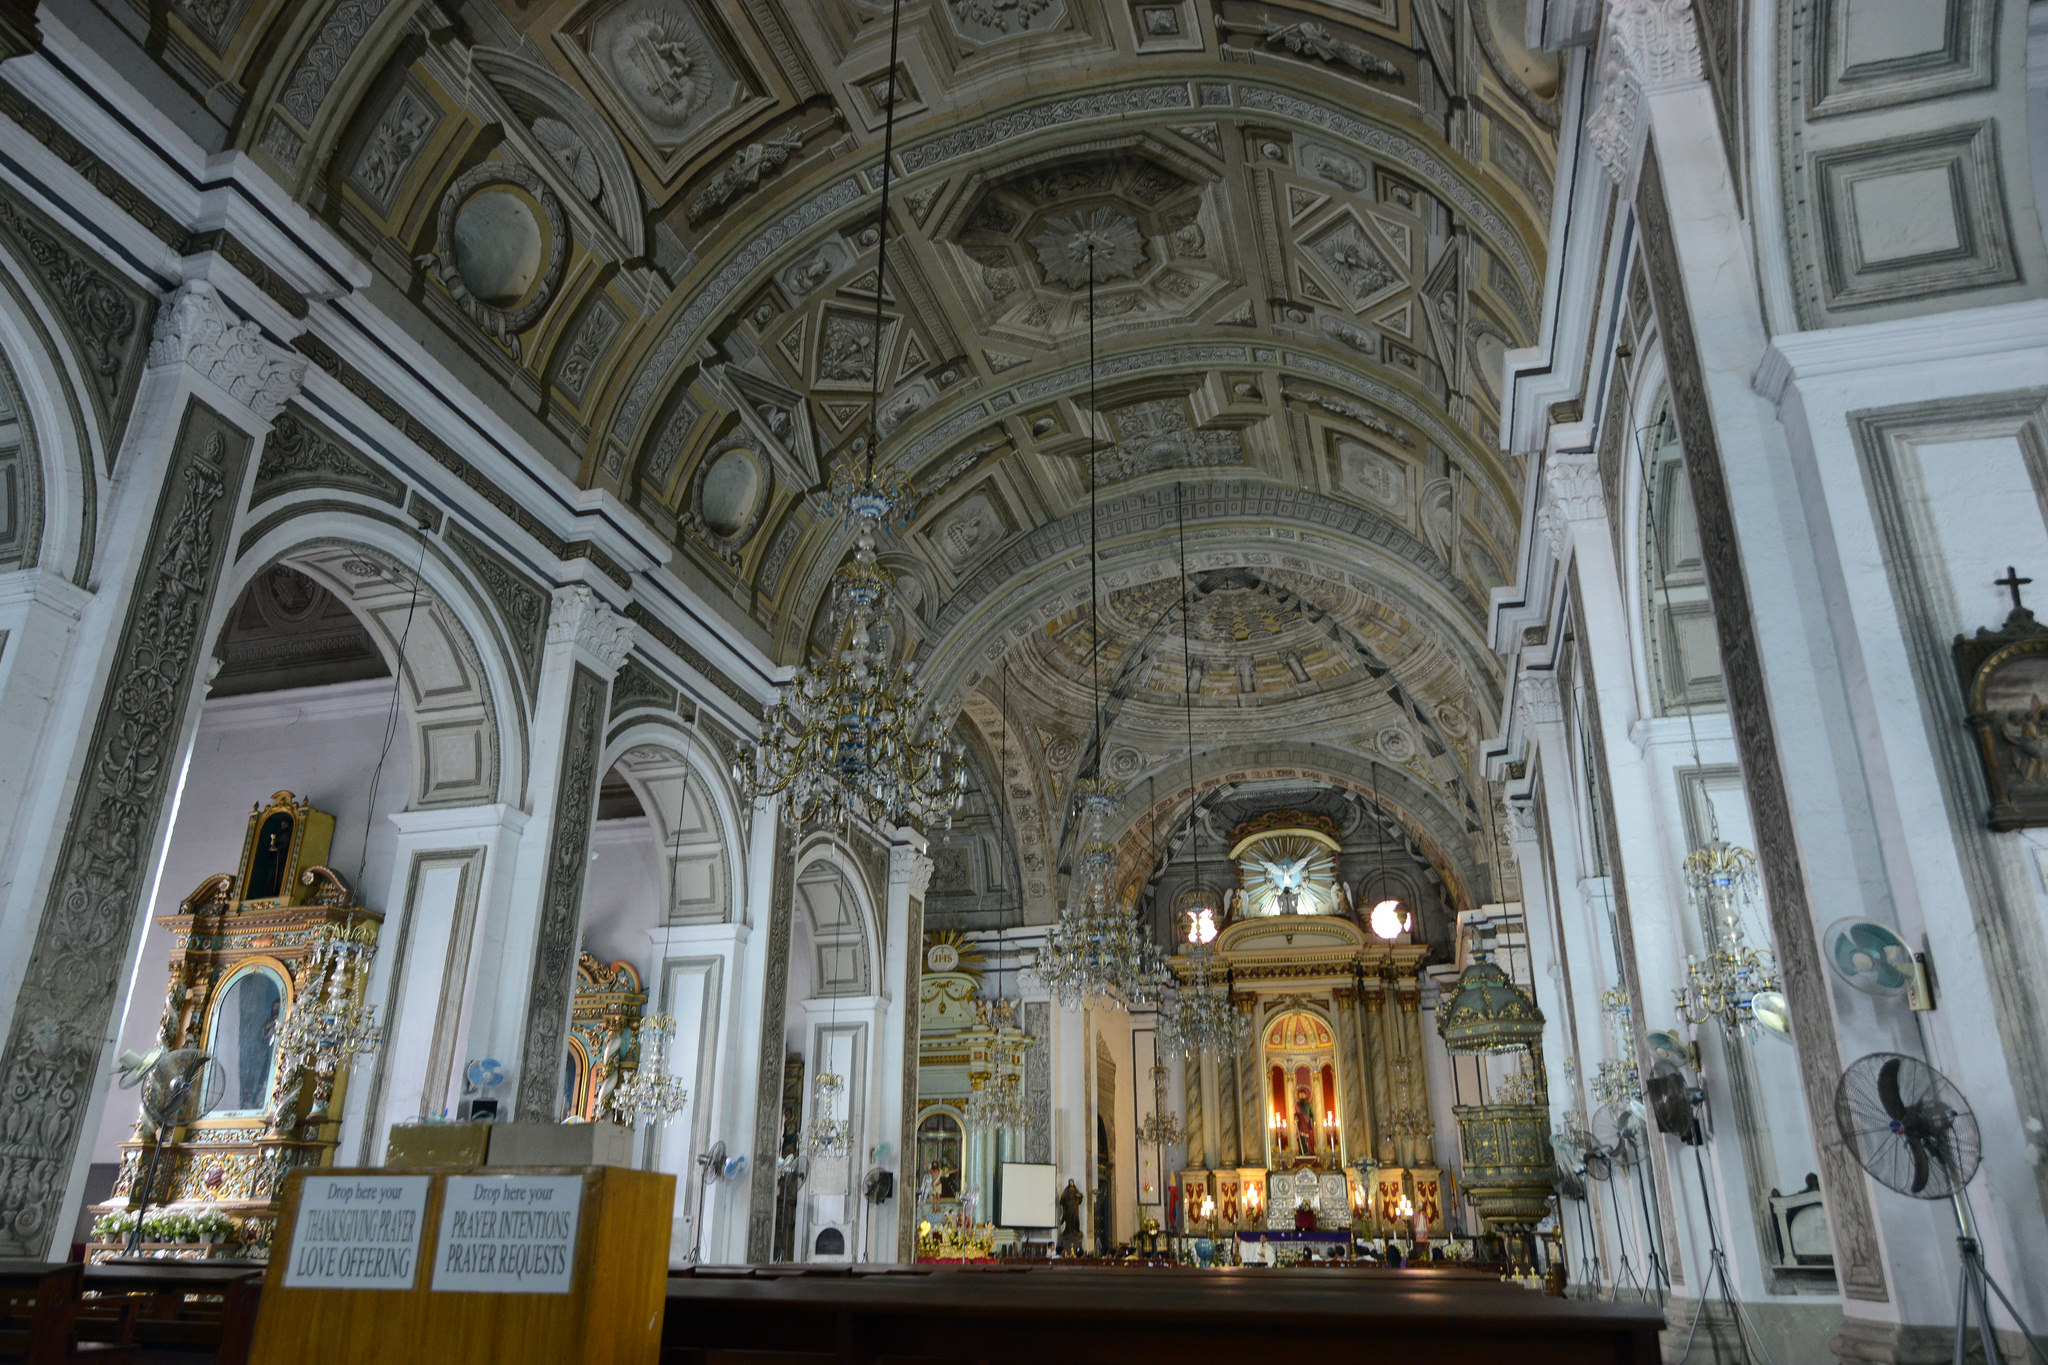 Interior of the San Agustin Church